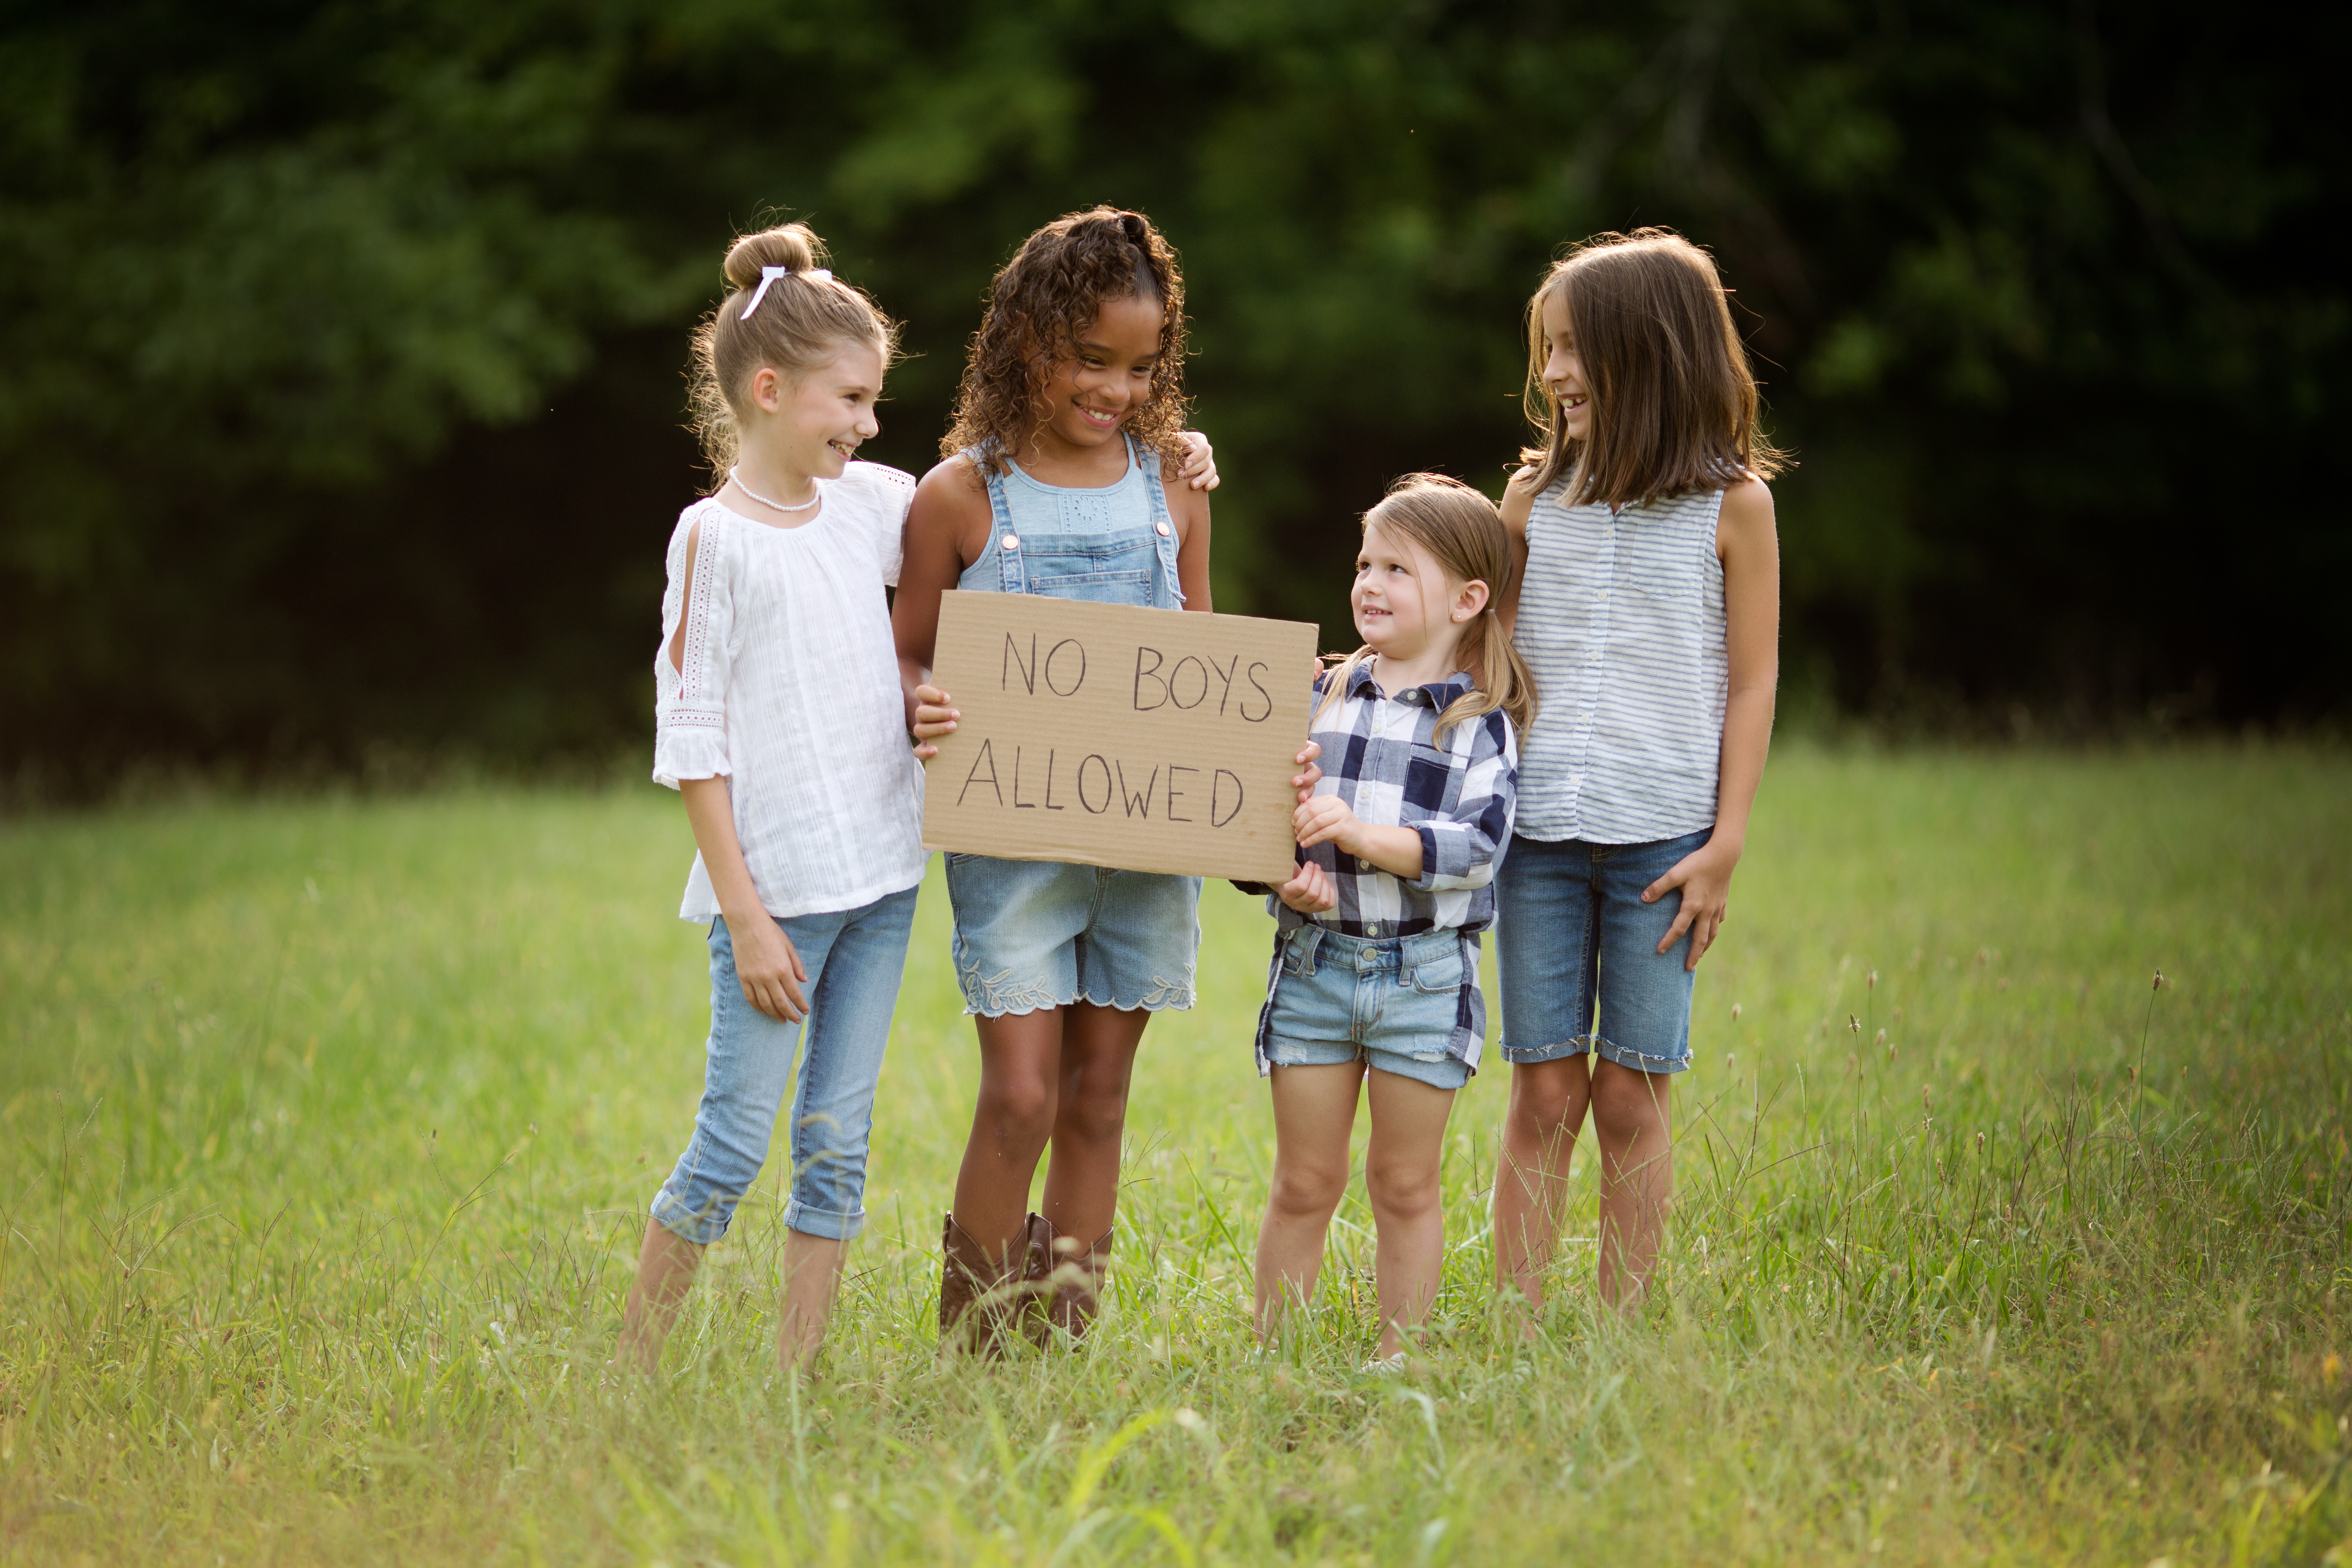 Schools Out & No Boys Allowed | Imagination Session | Greensboro NC Child Photographer